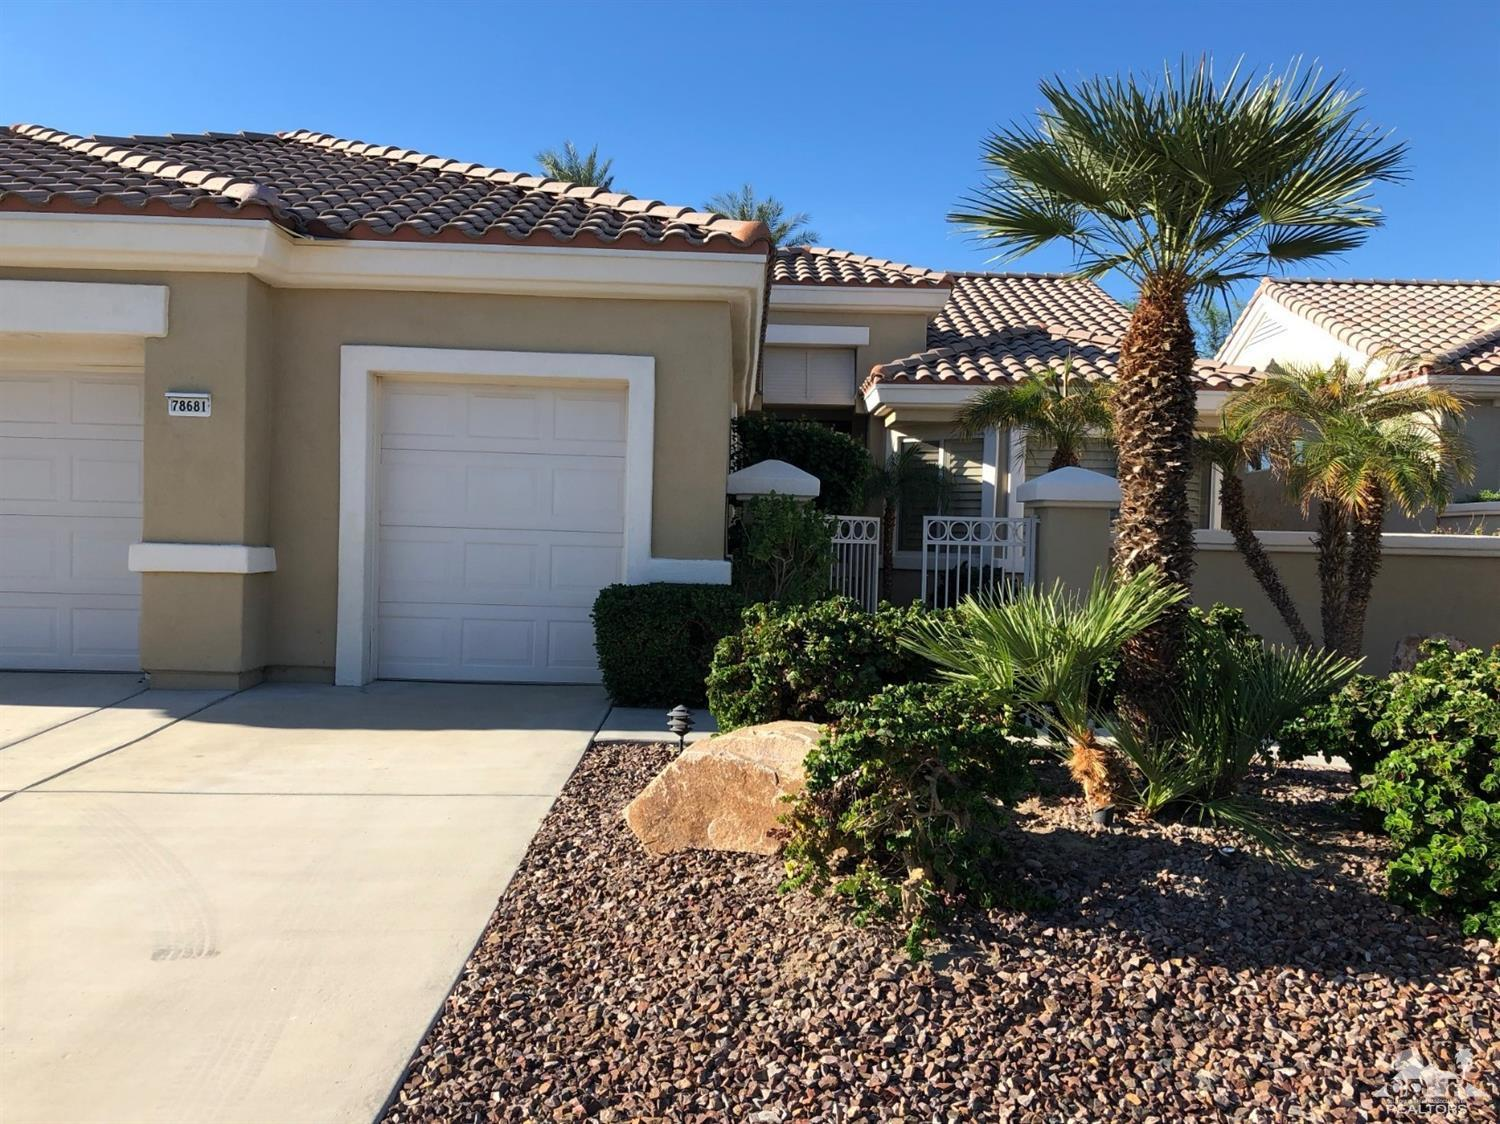 Photo of 78681 Kentia Palm Drive, Palm Desert, CA 92211